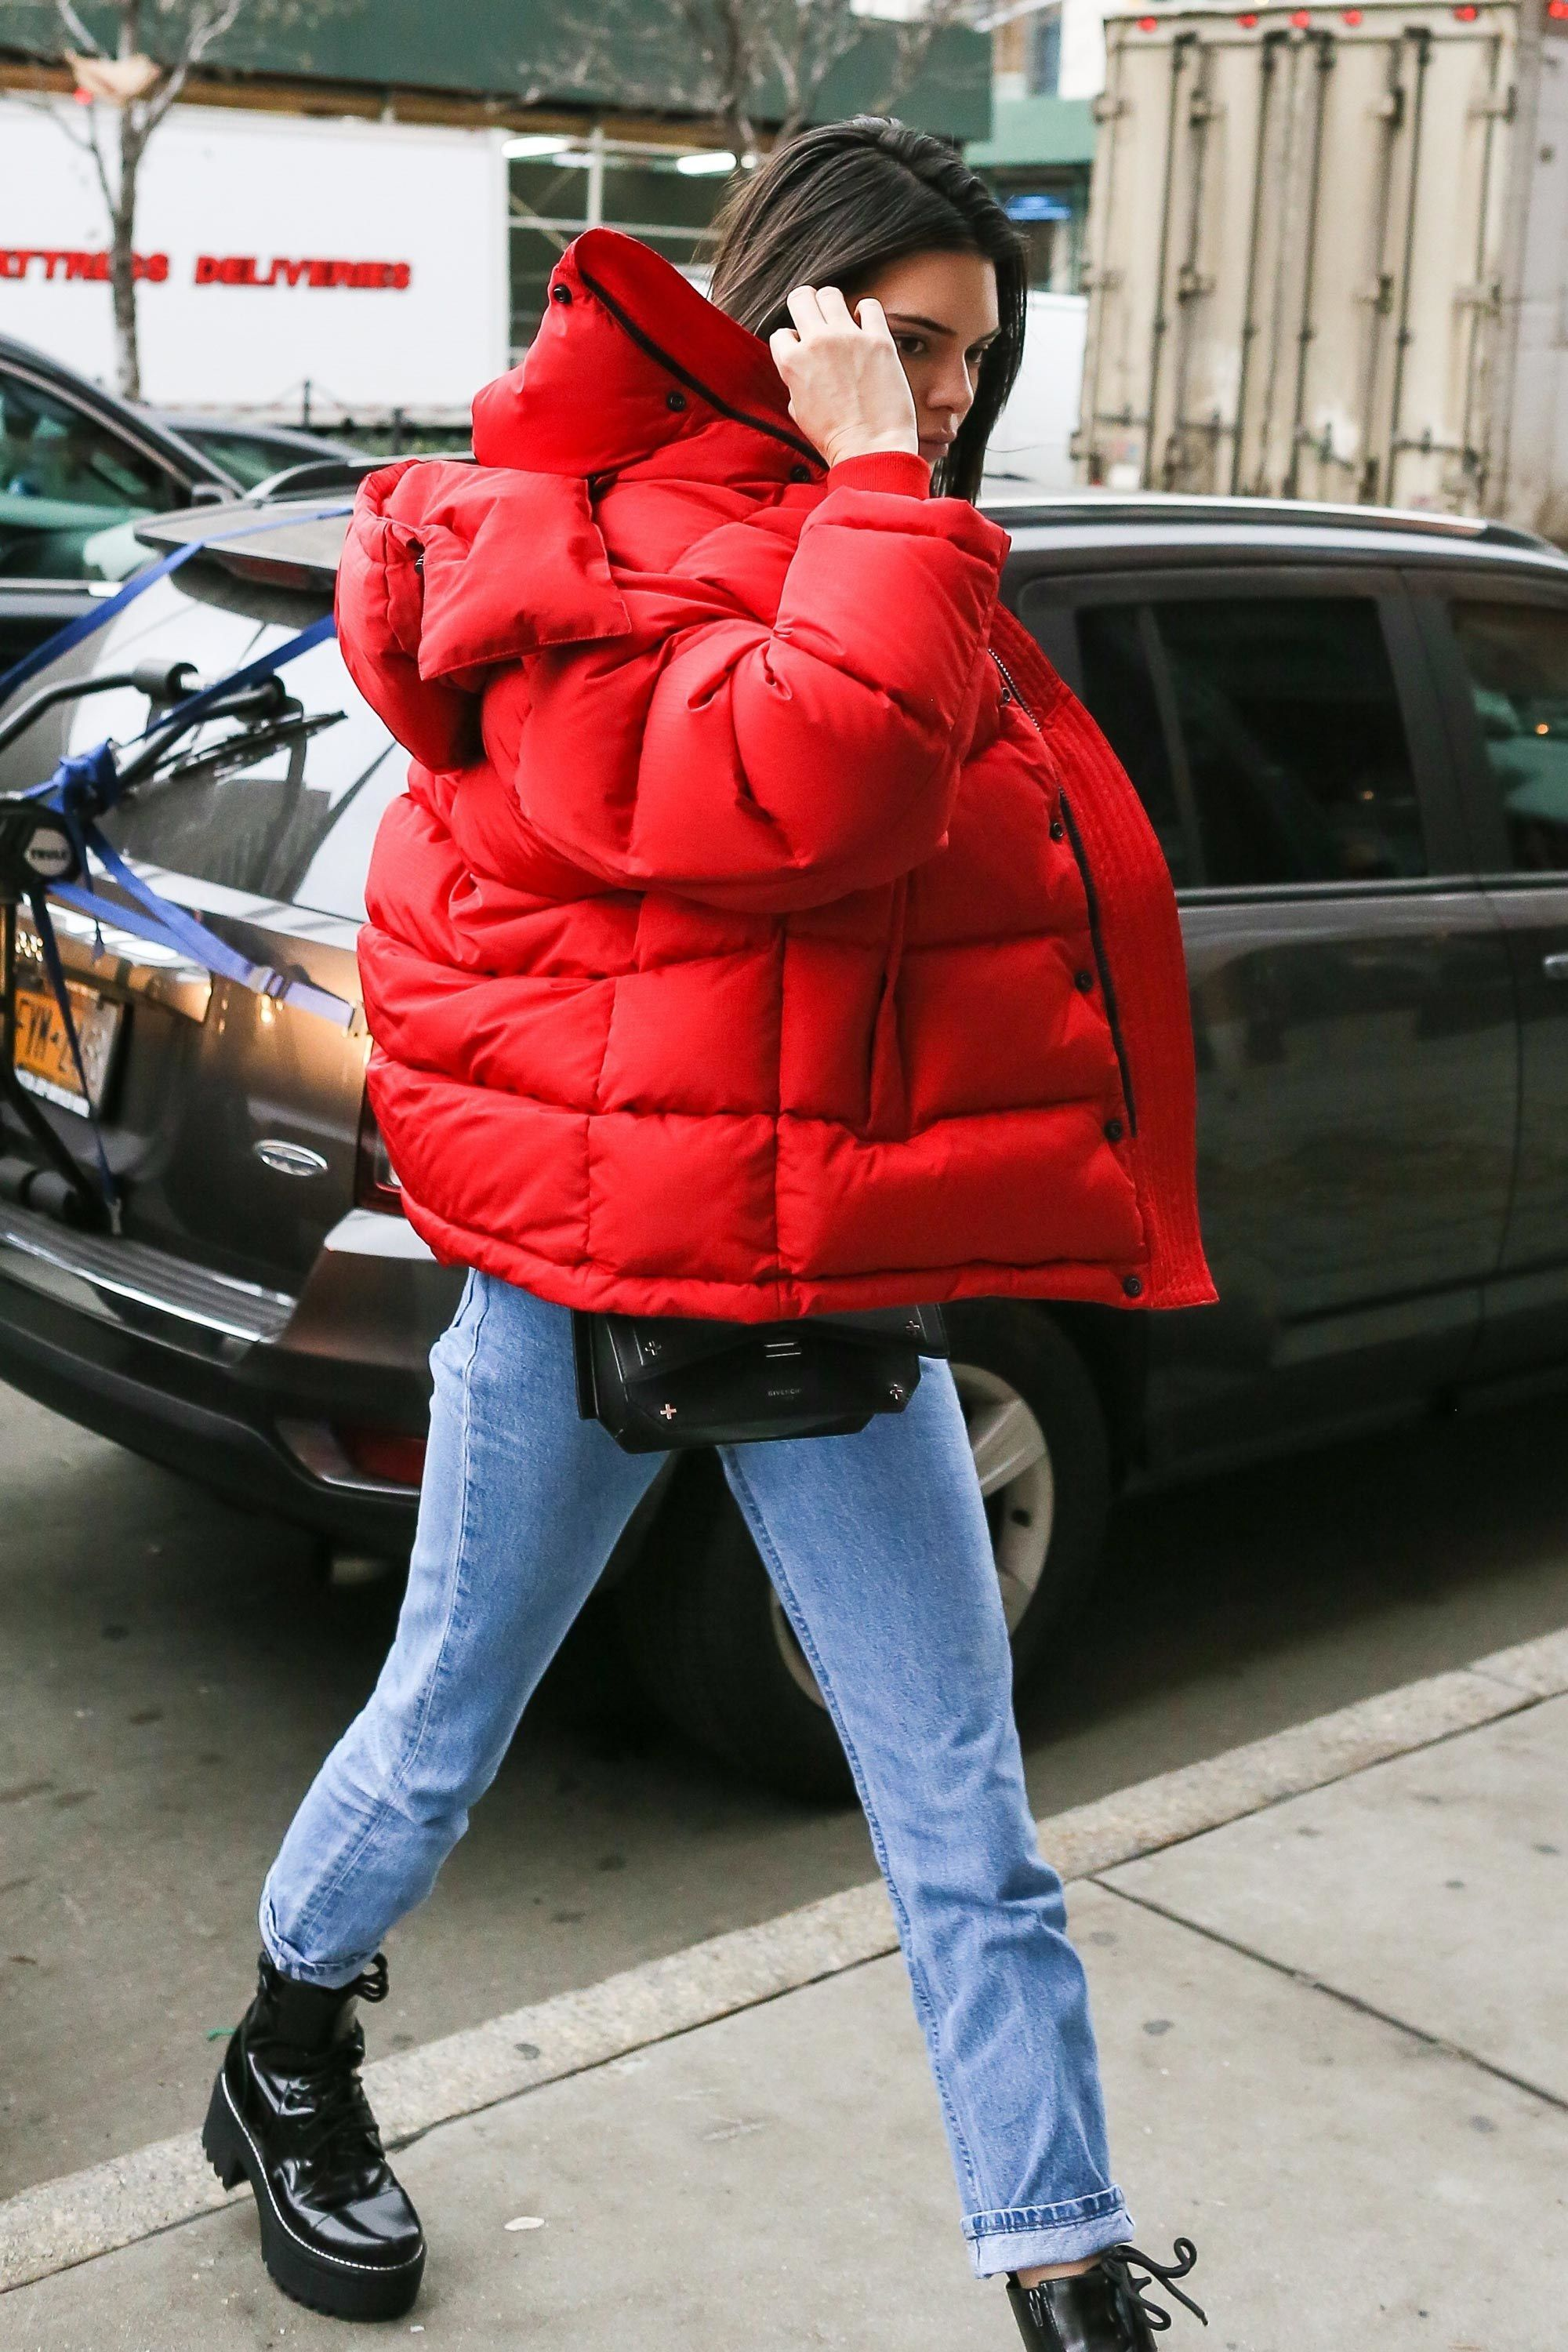 Kendall Jenner Tries on the Larger-Than-Life Puffer Jacket for Size #fashiontag